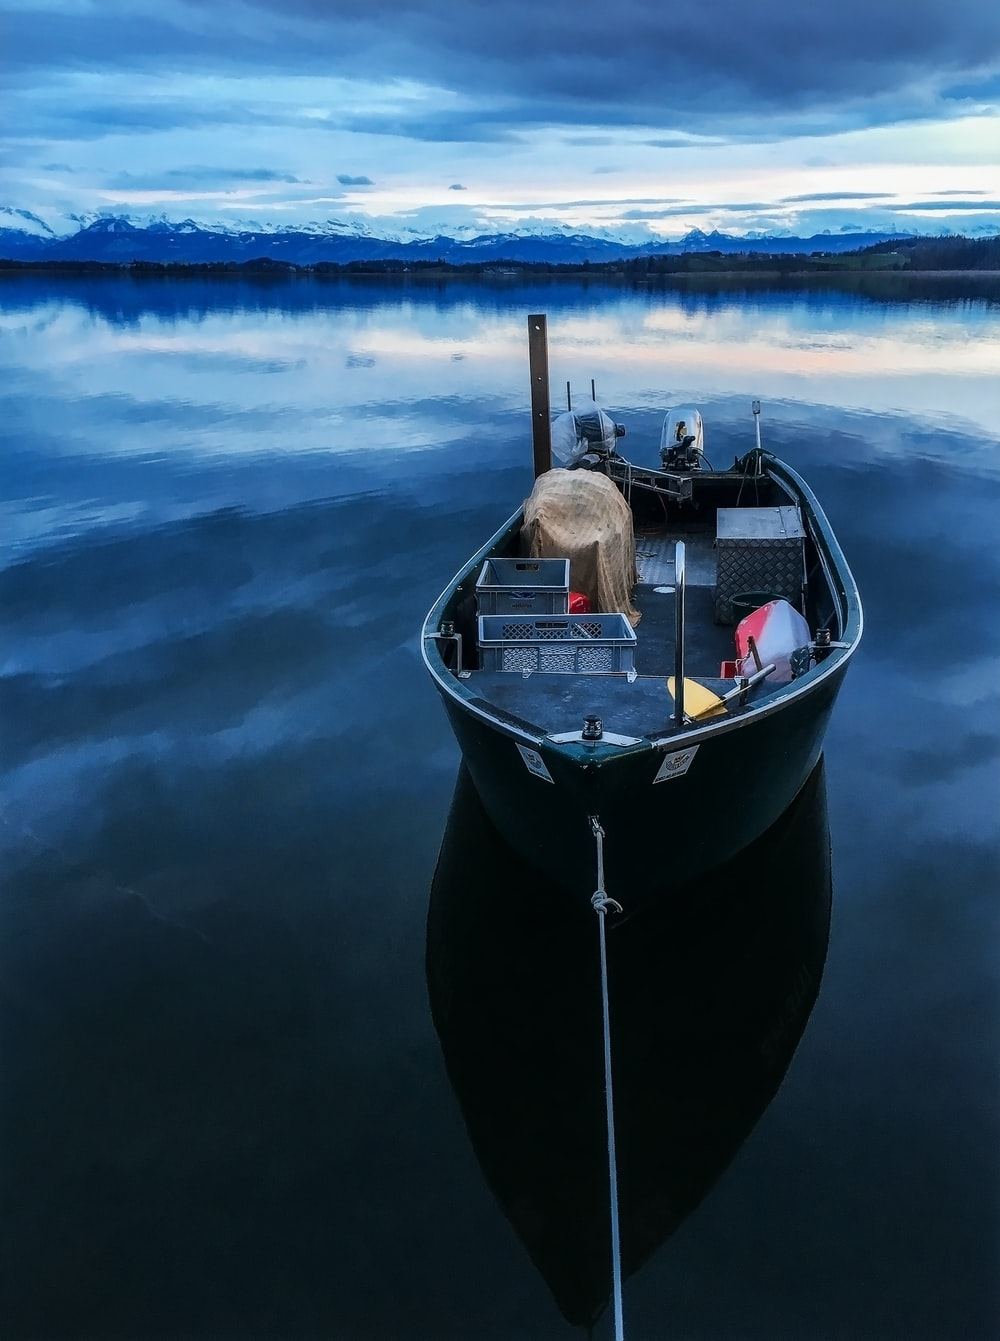 black boat on body of water during daytime